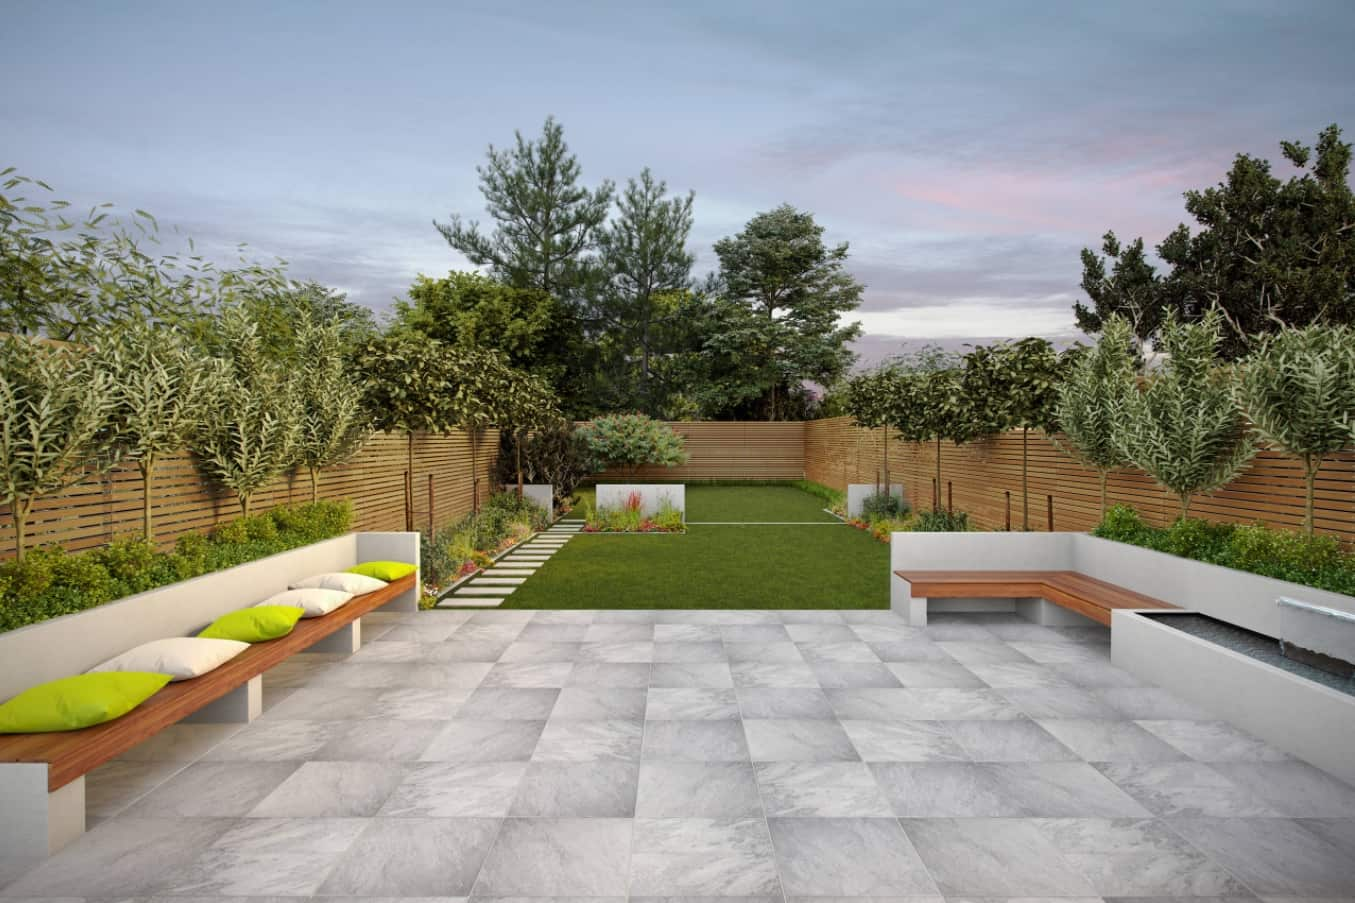 Top Tips for Designing Your Patio. Great modern design and concrete slabs at the open rest zone at the backyard